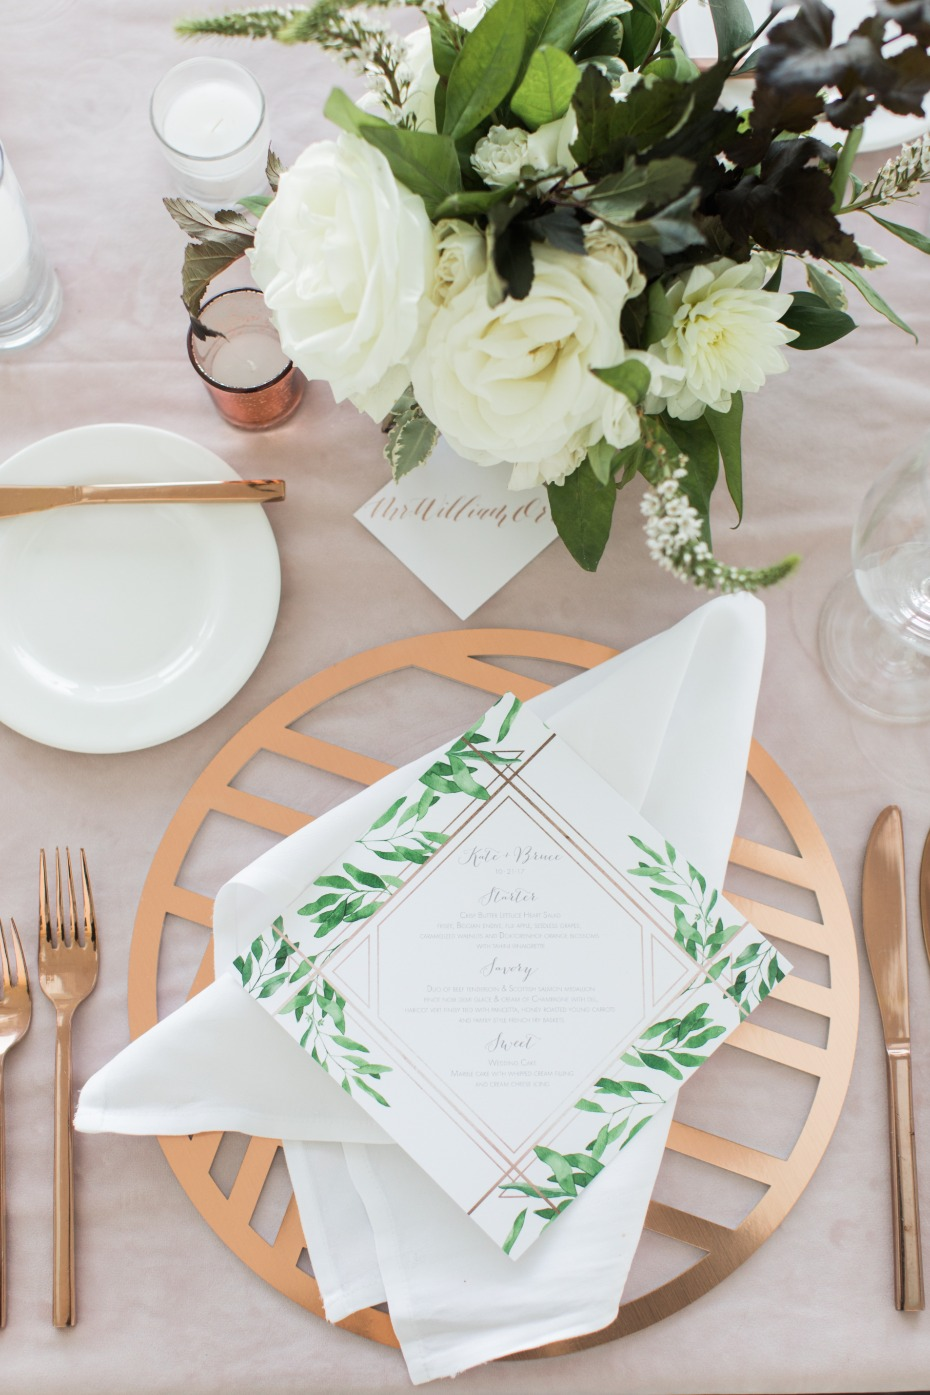 White, green and rose gold table setting